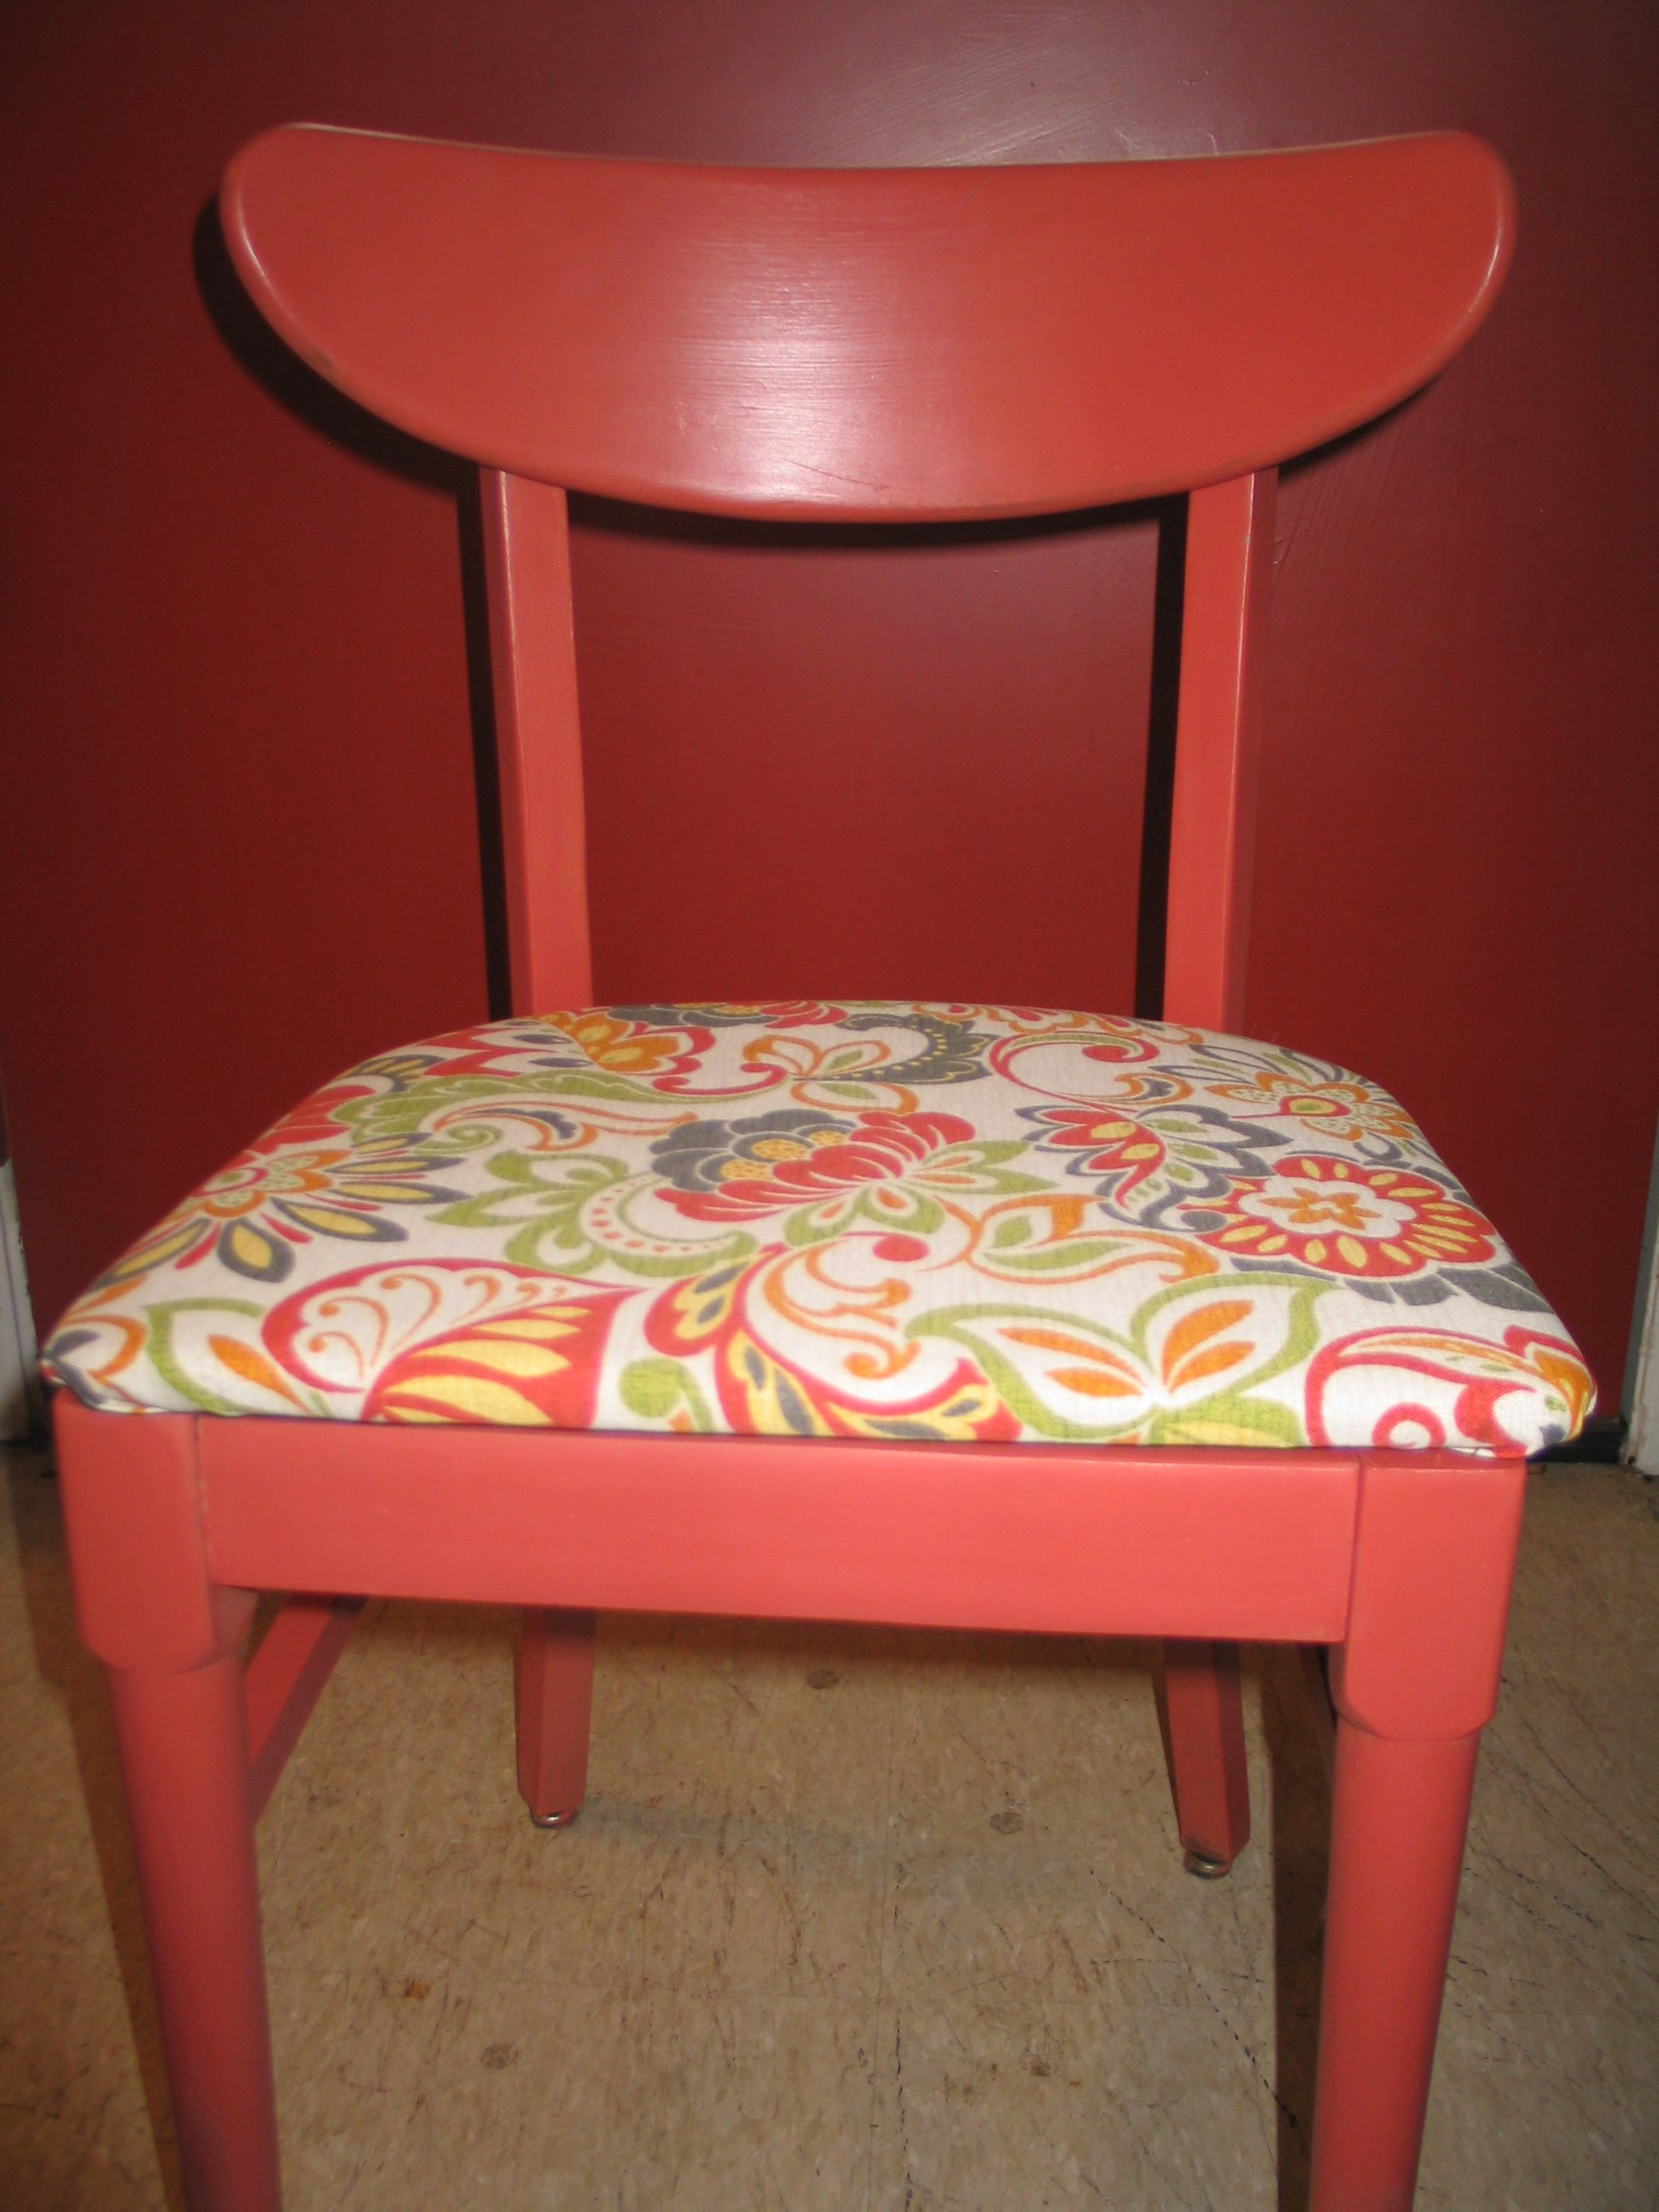 Love this little retro chair. It's a 1950s/1960s blond